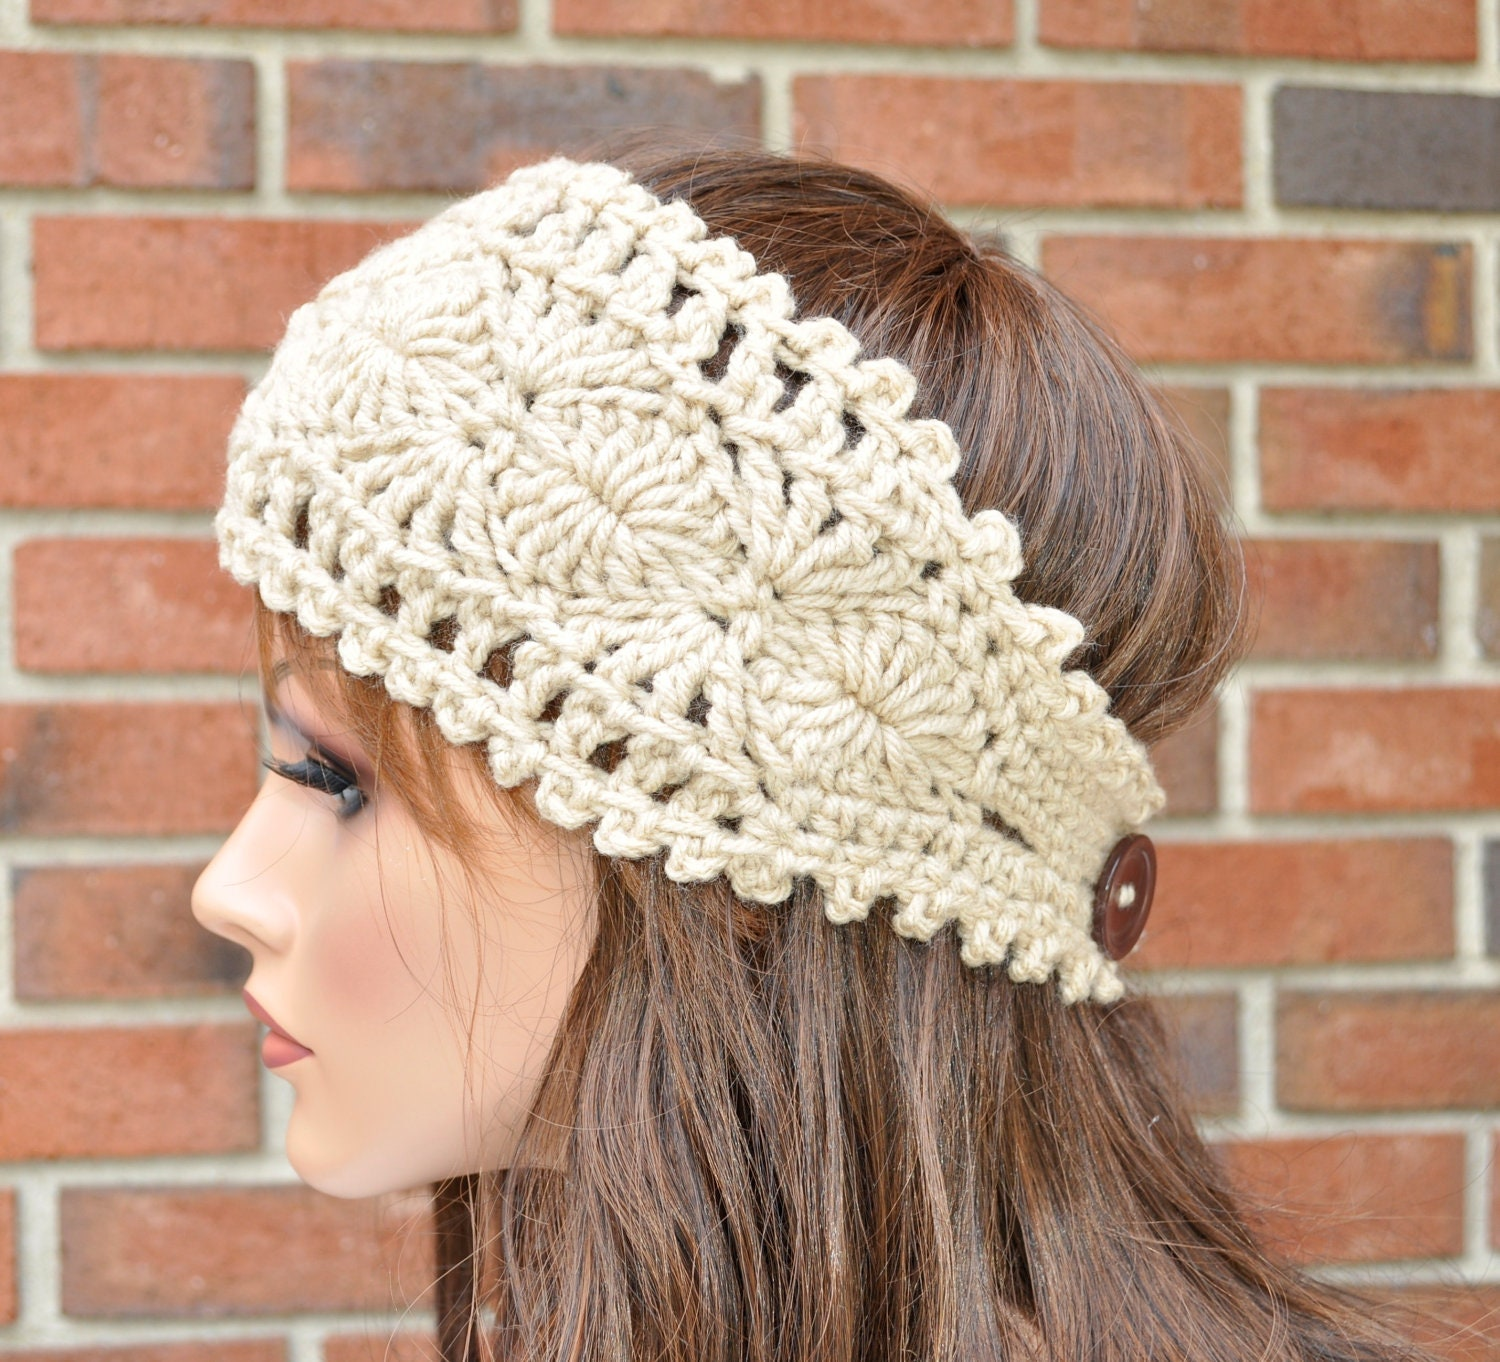 Crochet Ear Warmer Handmade Accessory Womens Crochet By